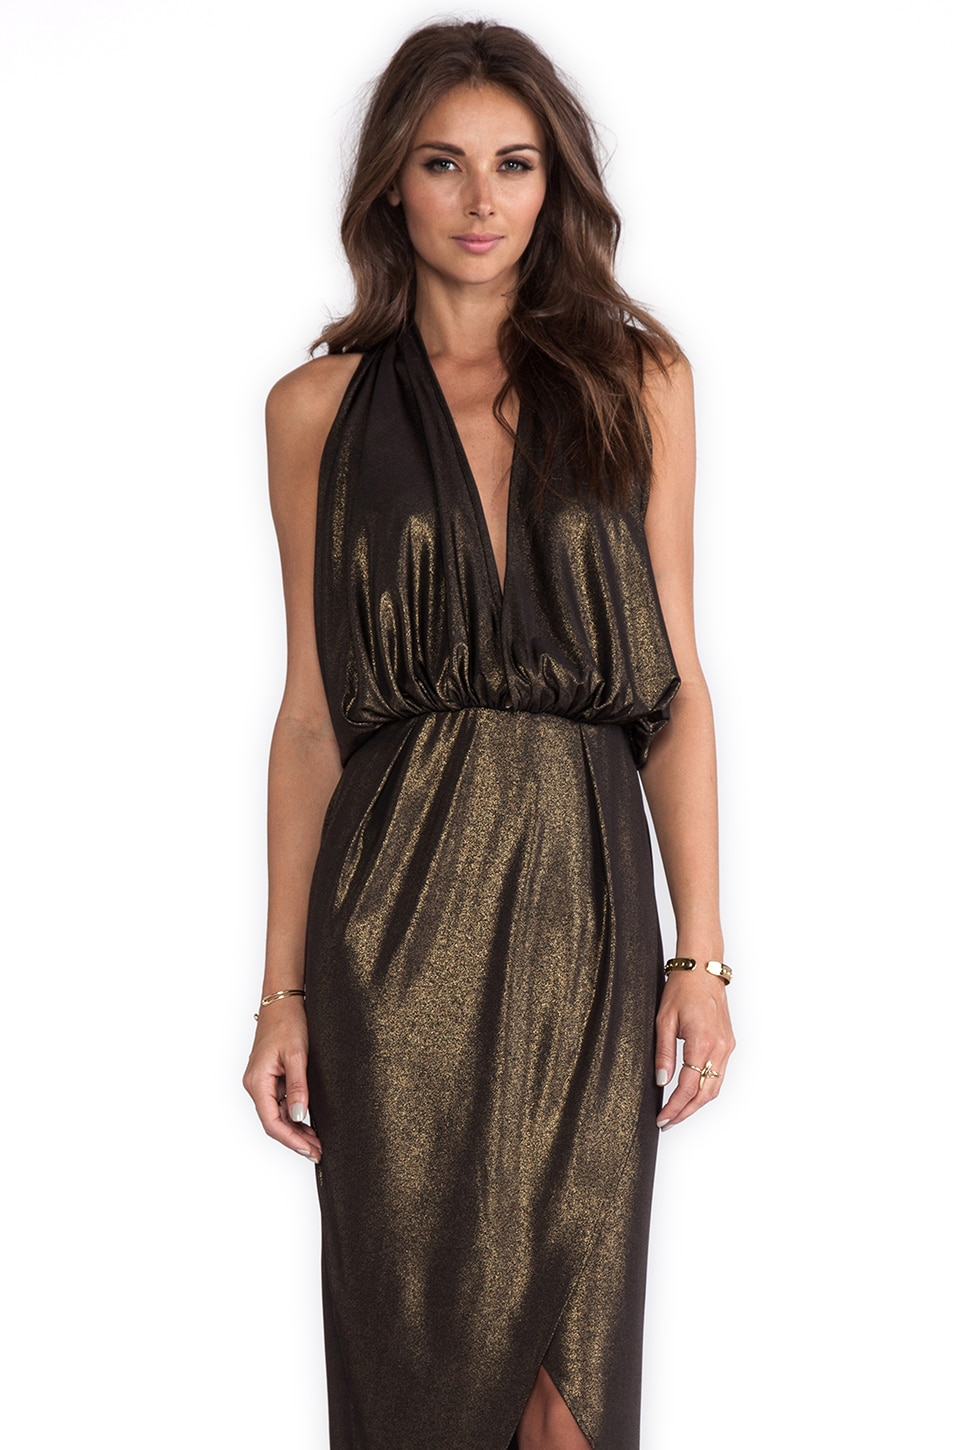 Naven Glam Halter Dress in Knit Lame/Metallic Gold